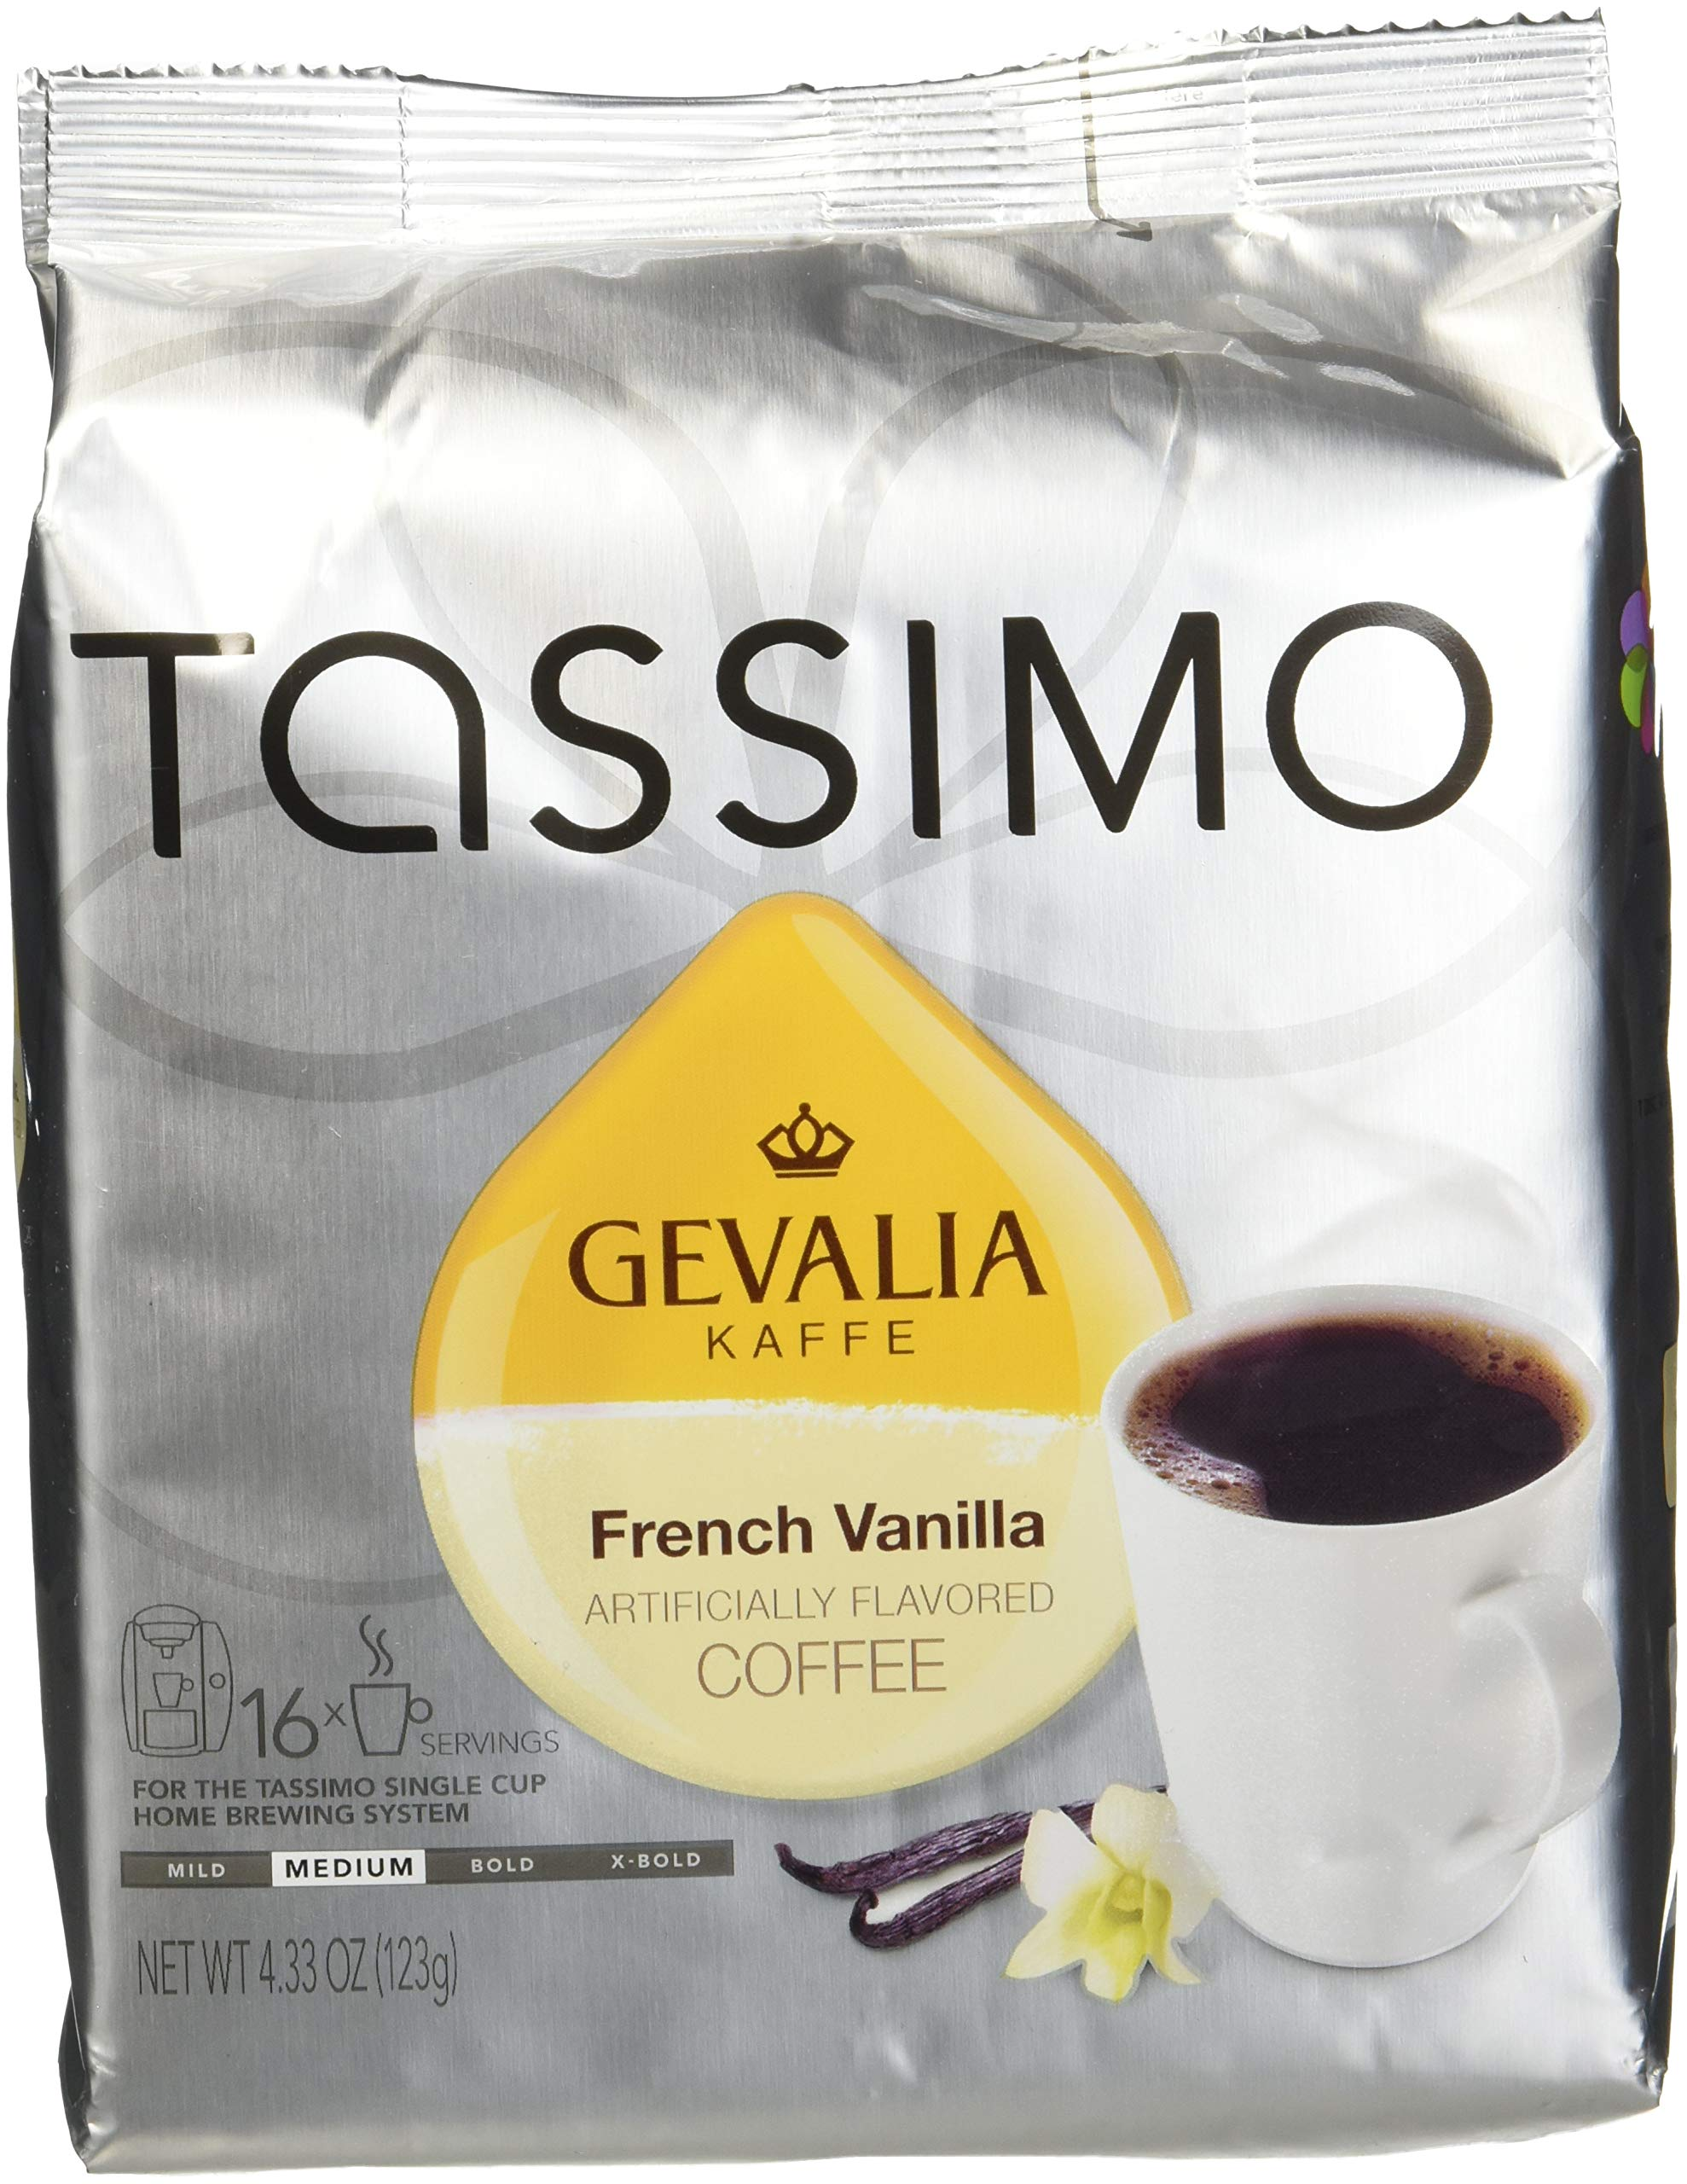 Tassimo T-Discs: Gevalia French Vanilla Coffee T-Disc Pods (Case of 5 packages; 80 T-Discs Total)